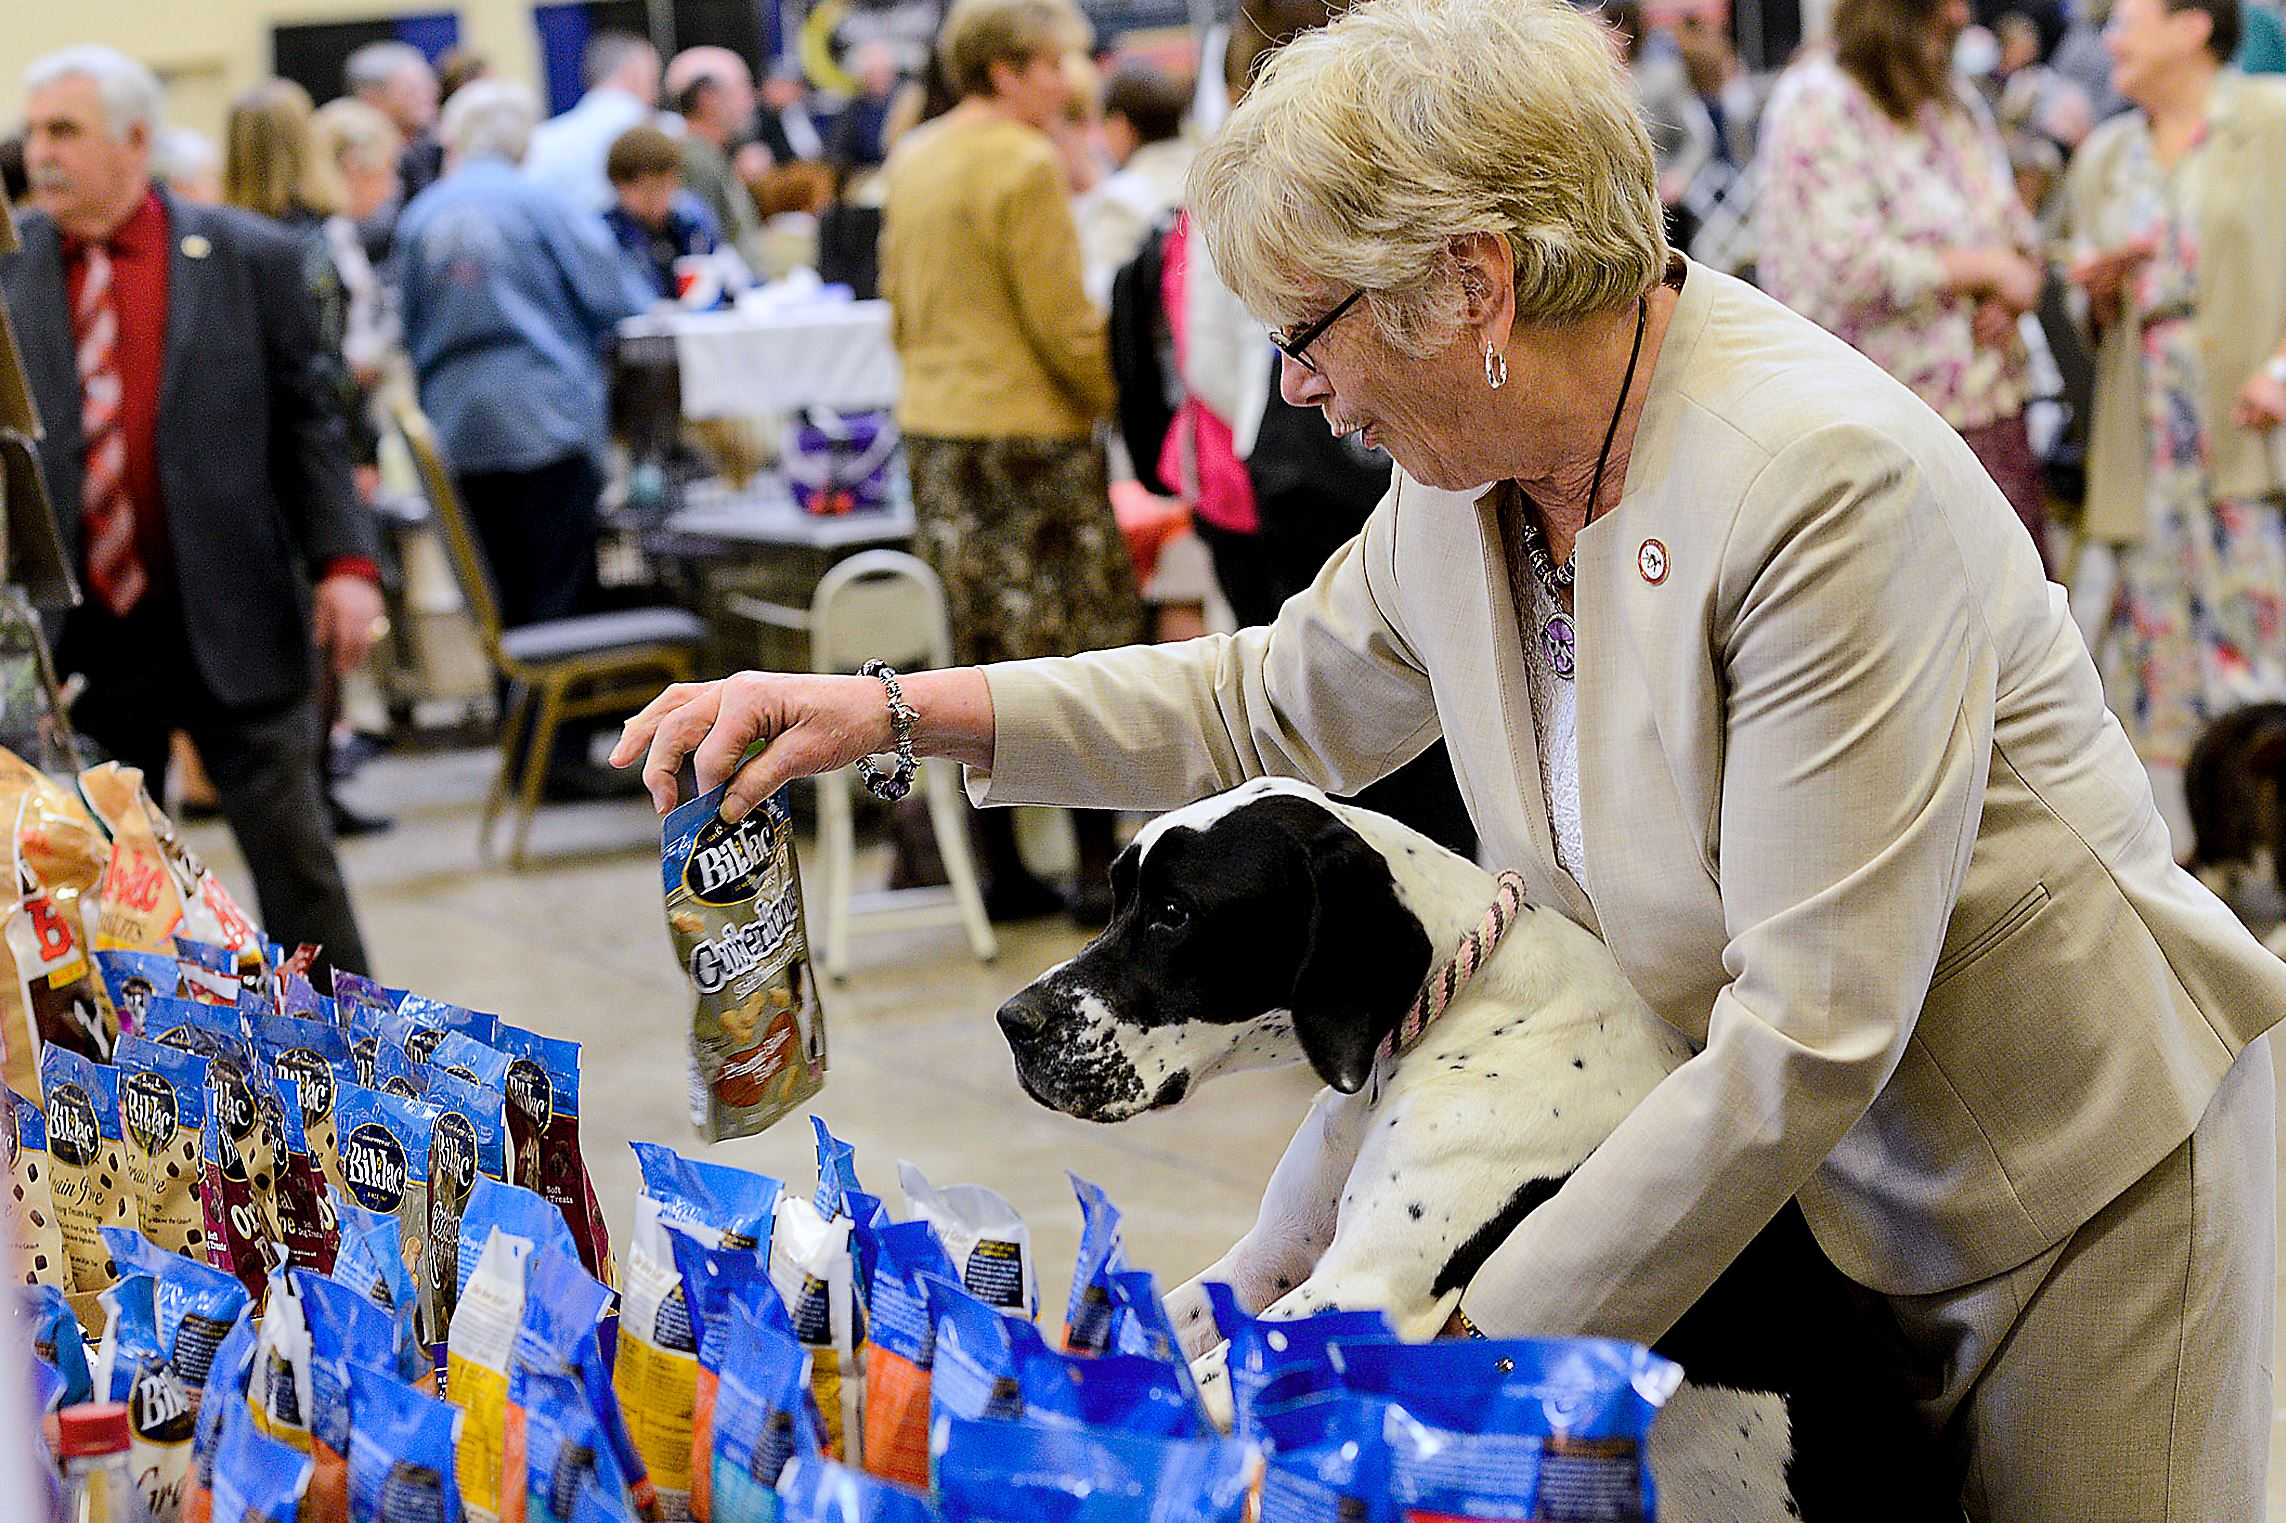 20170402lrpadogshow07-5 Panda, an 8-month-old pointer, is shown a bag of dog food by owner Louise Ritter from Ellwood City.